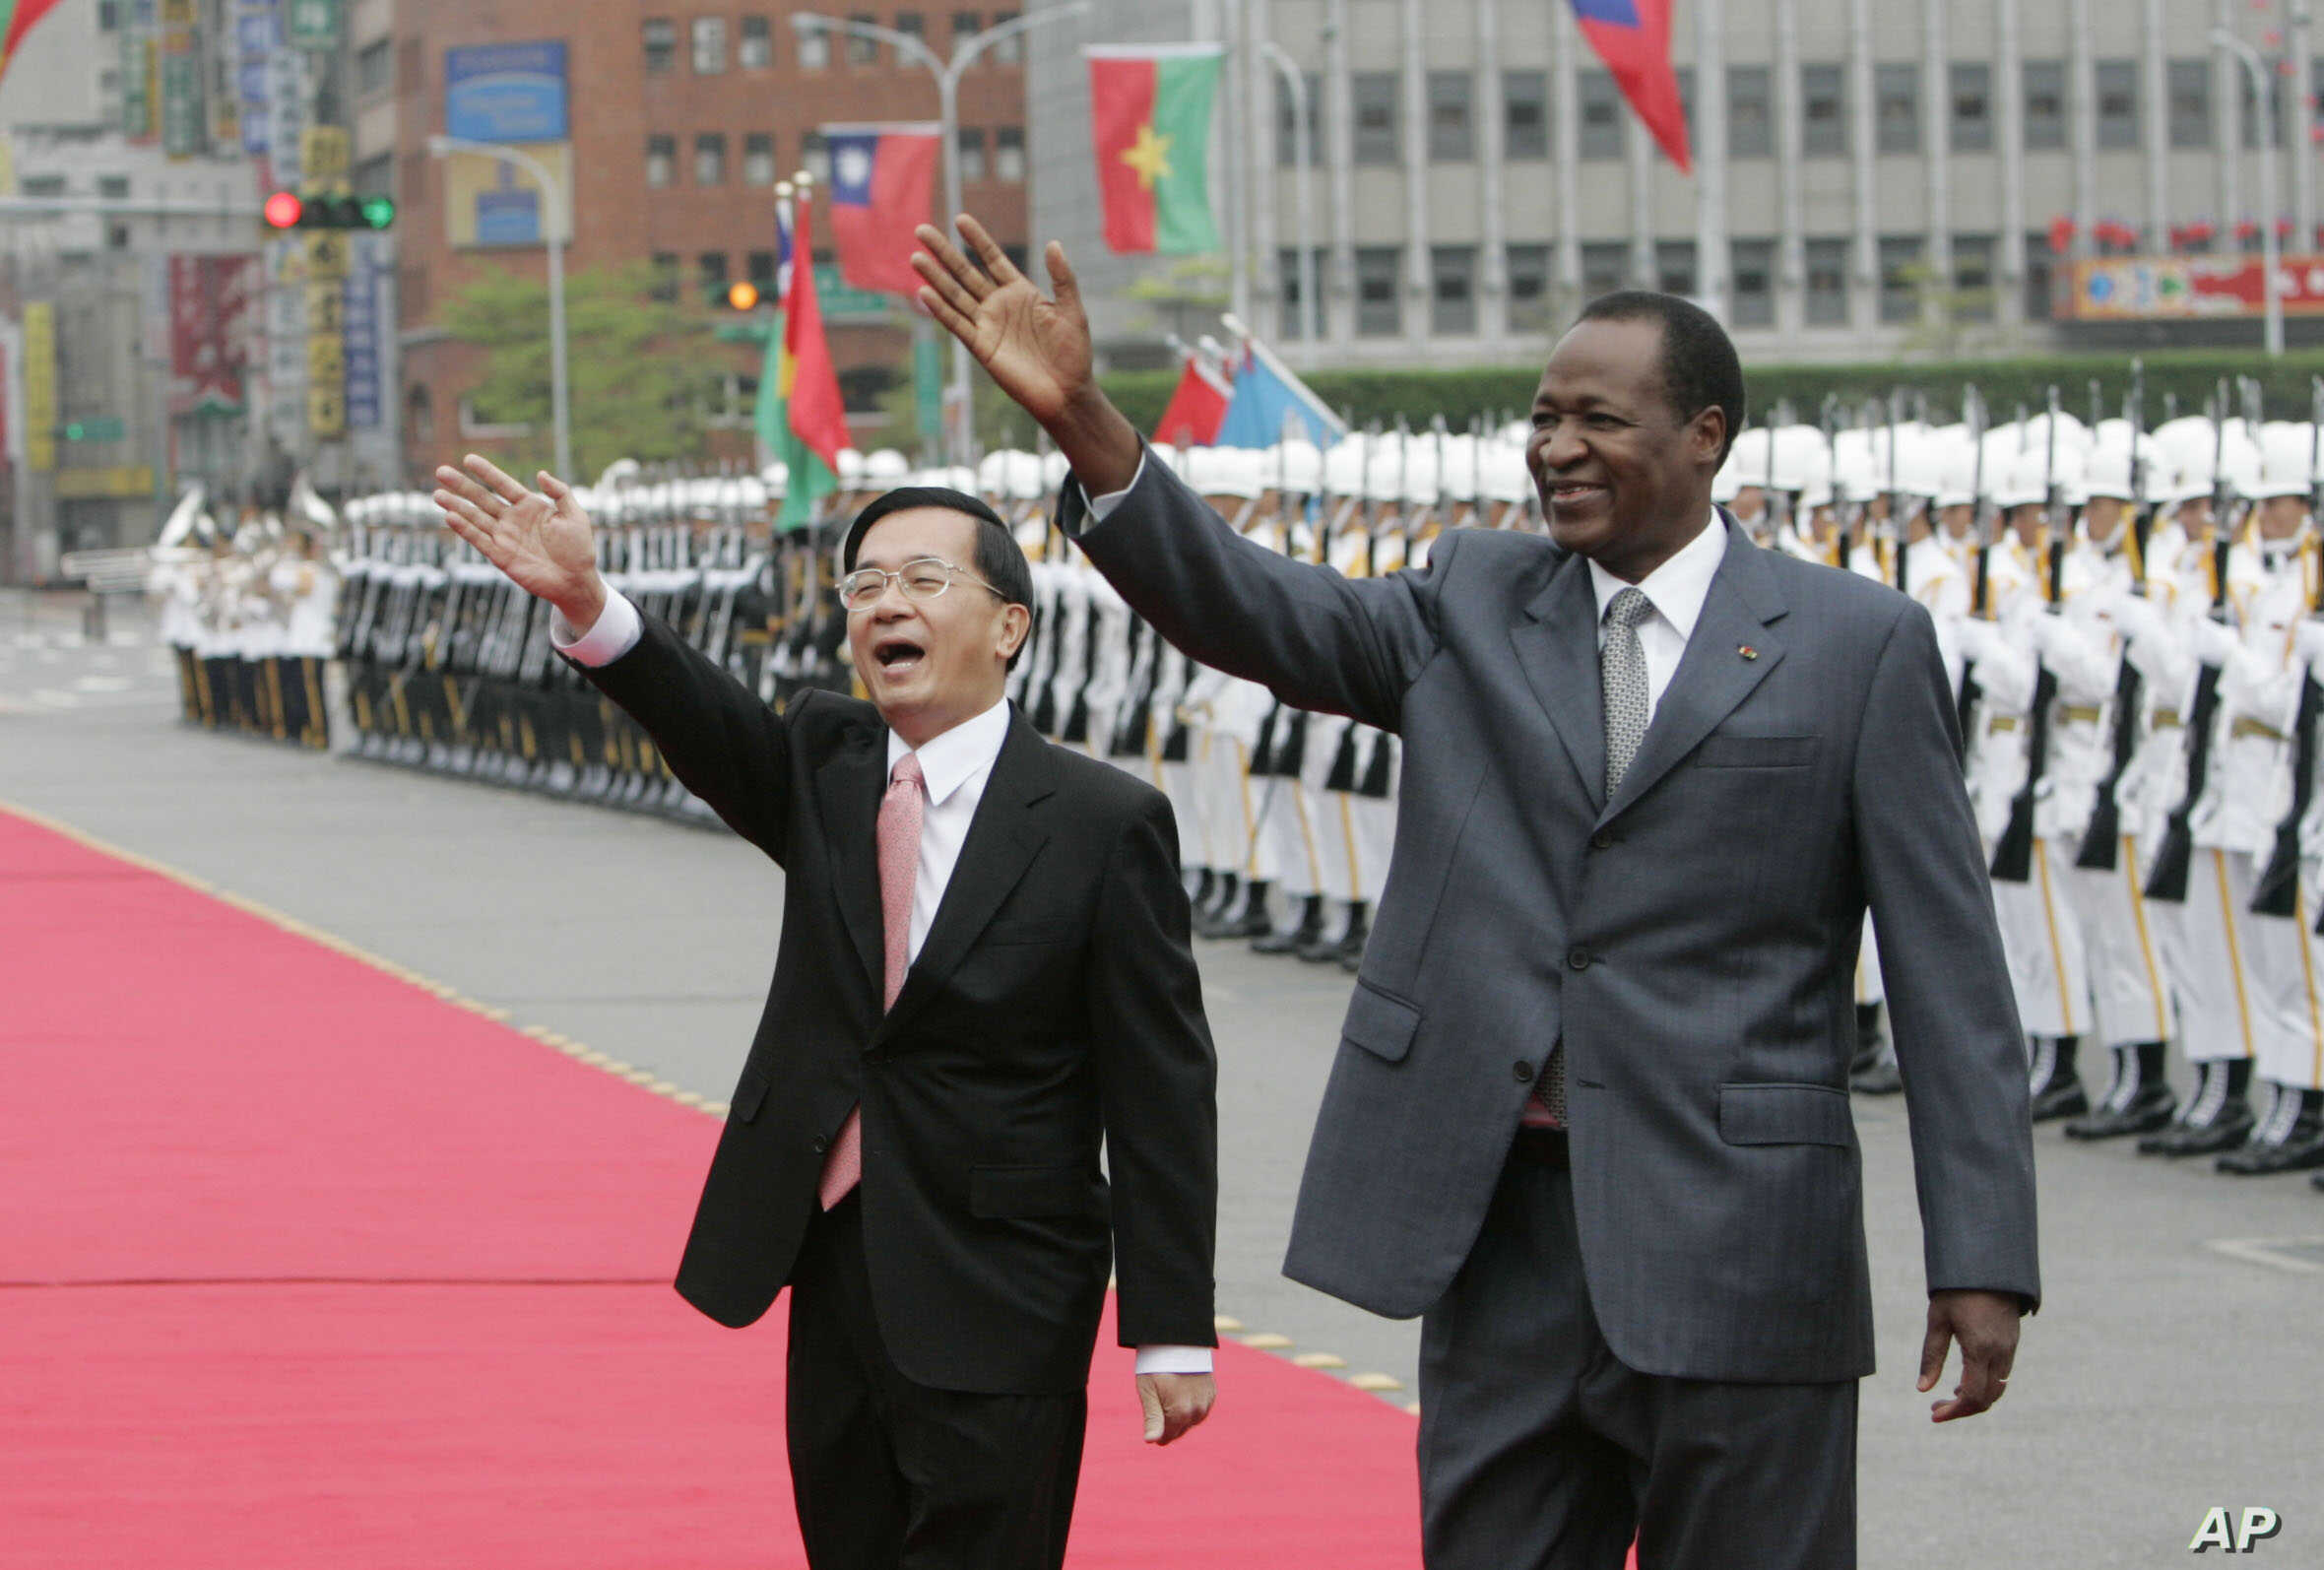 FILE - Taiwan's then-president, Chen Shui-bian, left, and Blaise Compaor, who was then president of Burkina Faso, wave to well-wishers during an honor guard review, Nov. 20, 2006, in front of the Presidential Office in Taipei, Taiwan. Burkina Faso ha...